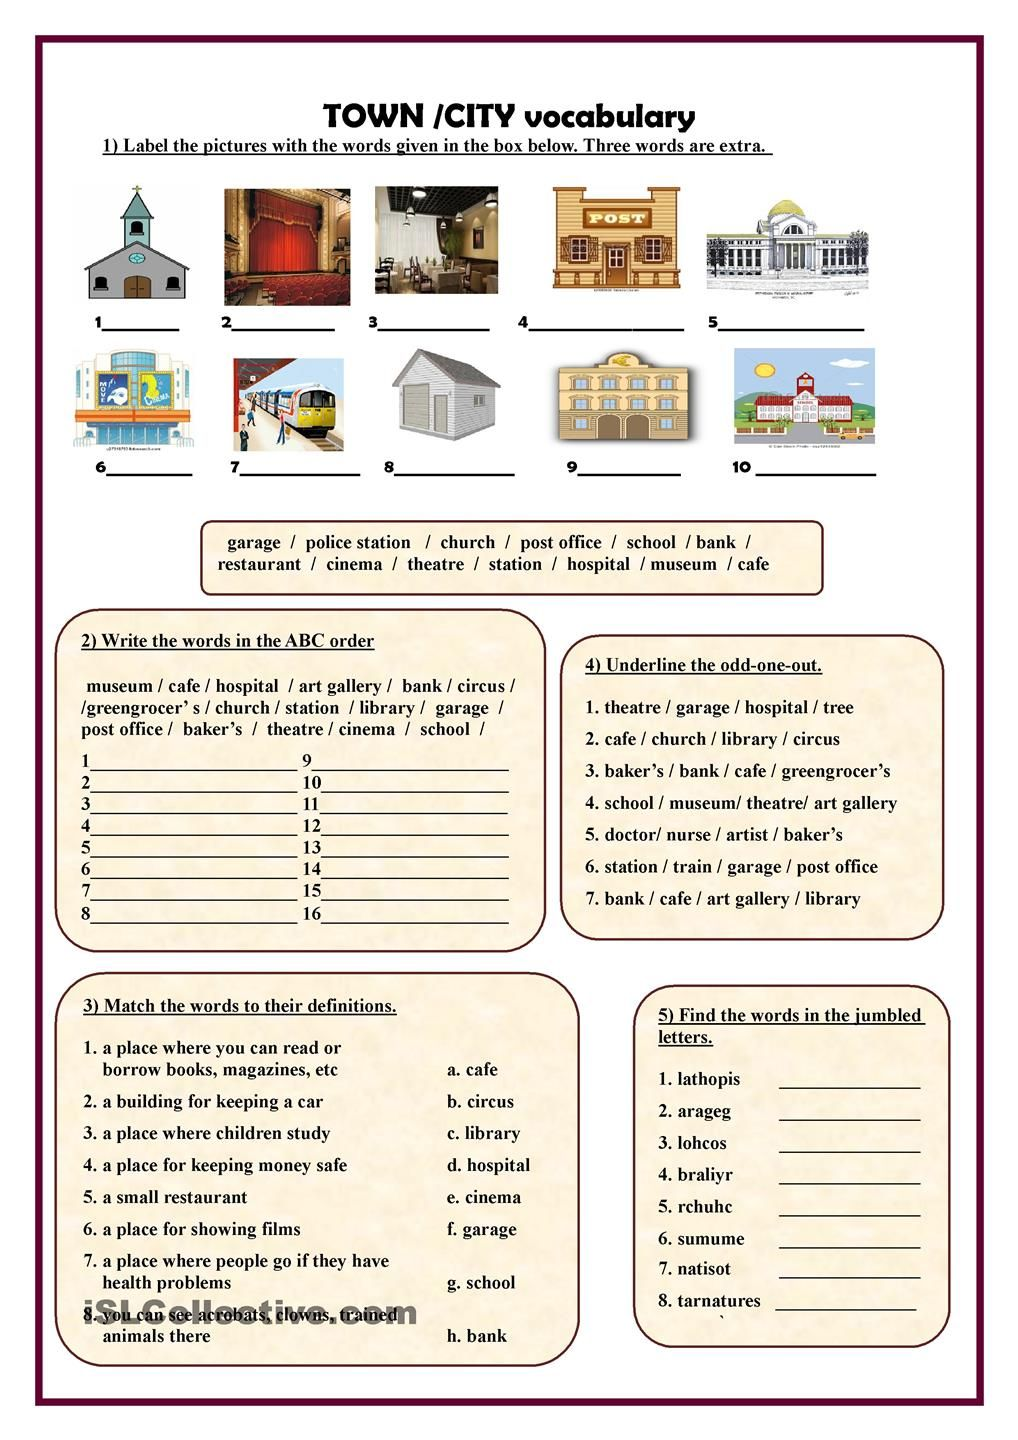 Town/City vocabulary worksheet - Free ESL printable worksheets made by  teachers